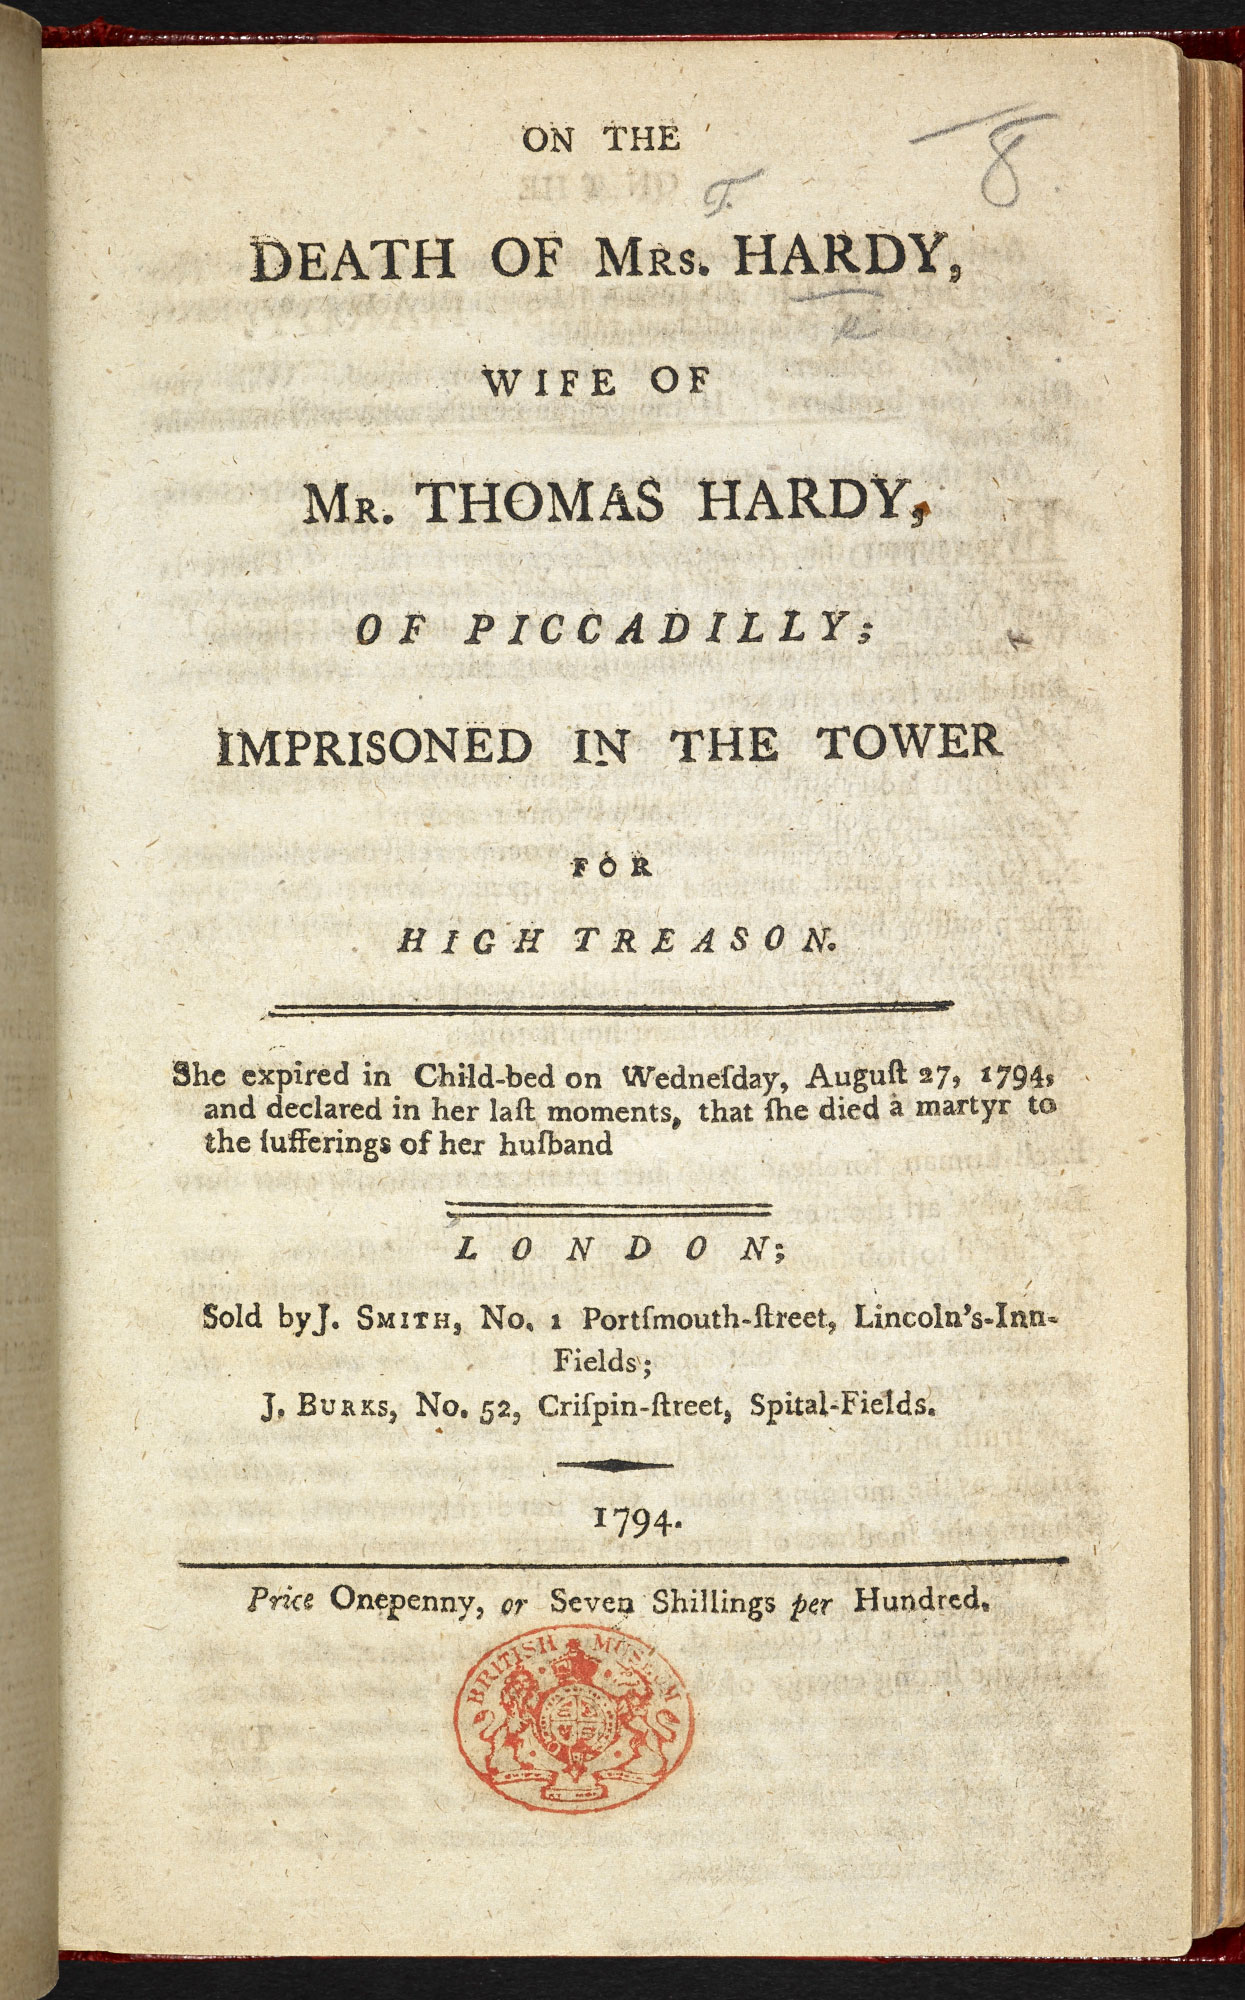 On the Death of Mrs Hardy, a radical pamphlet